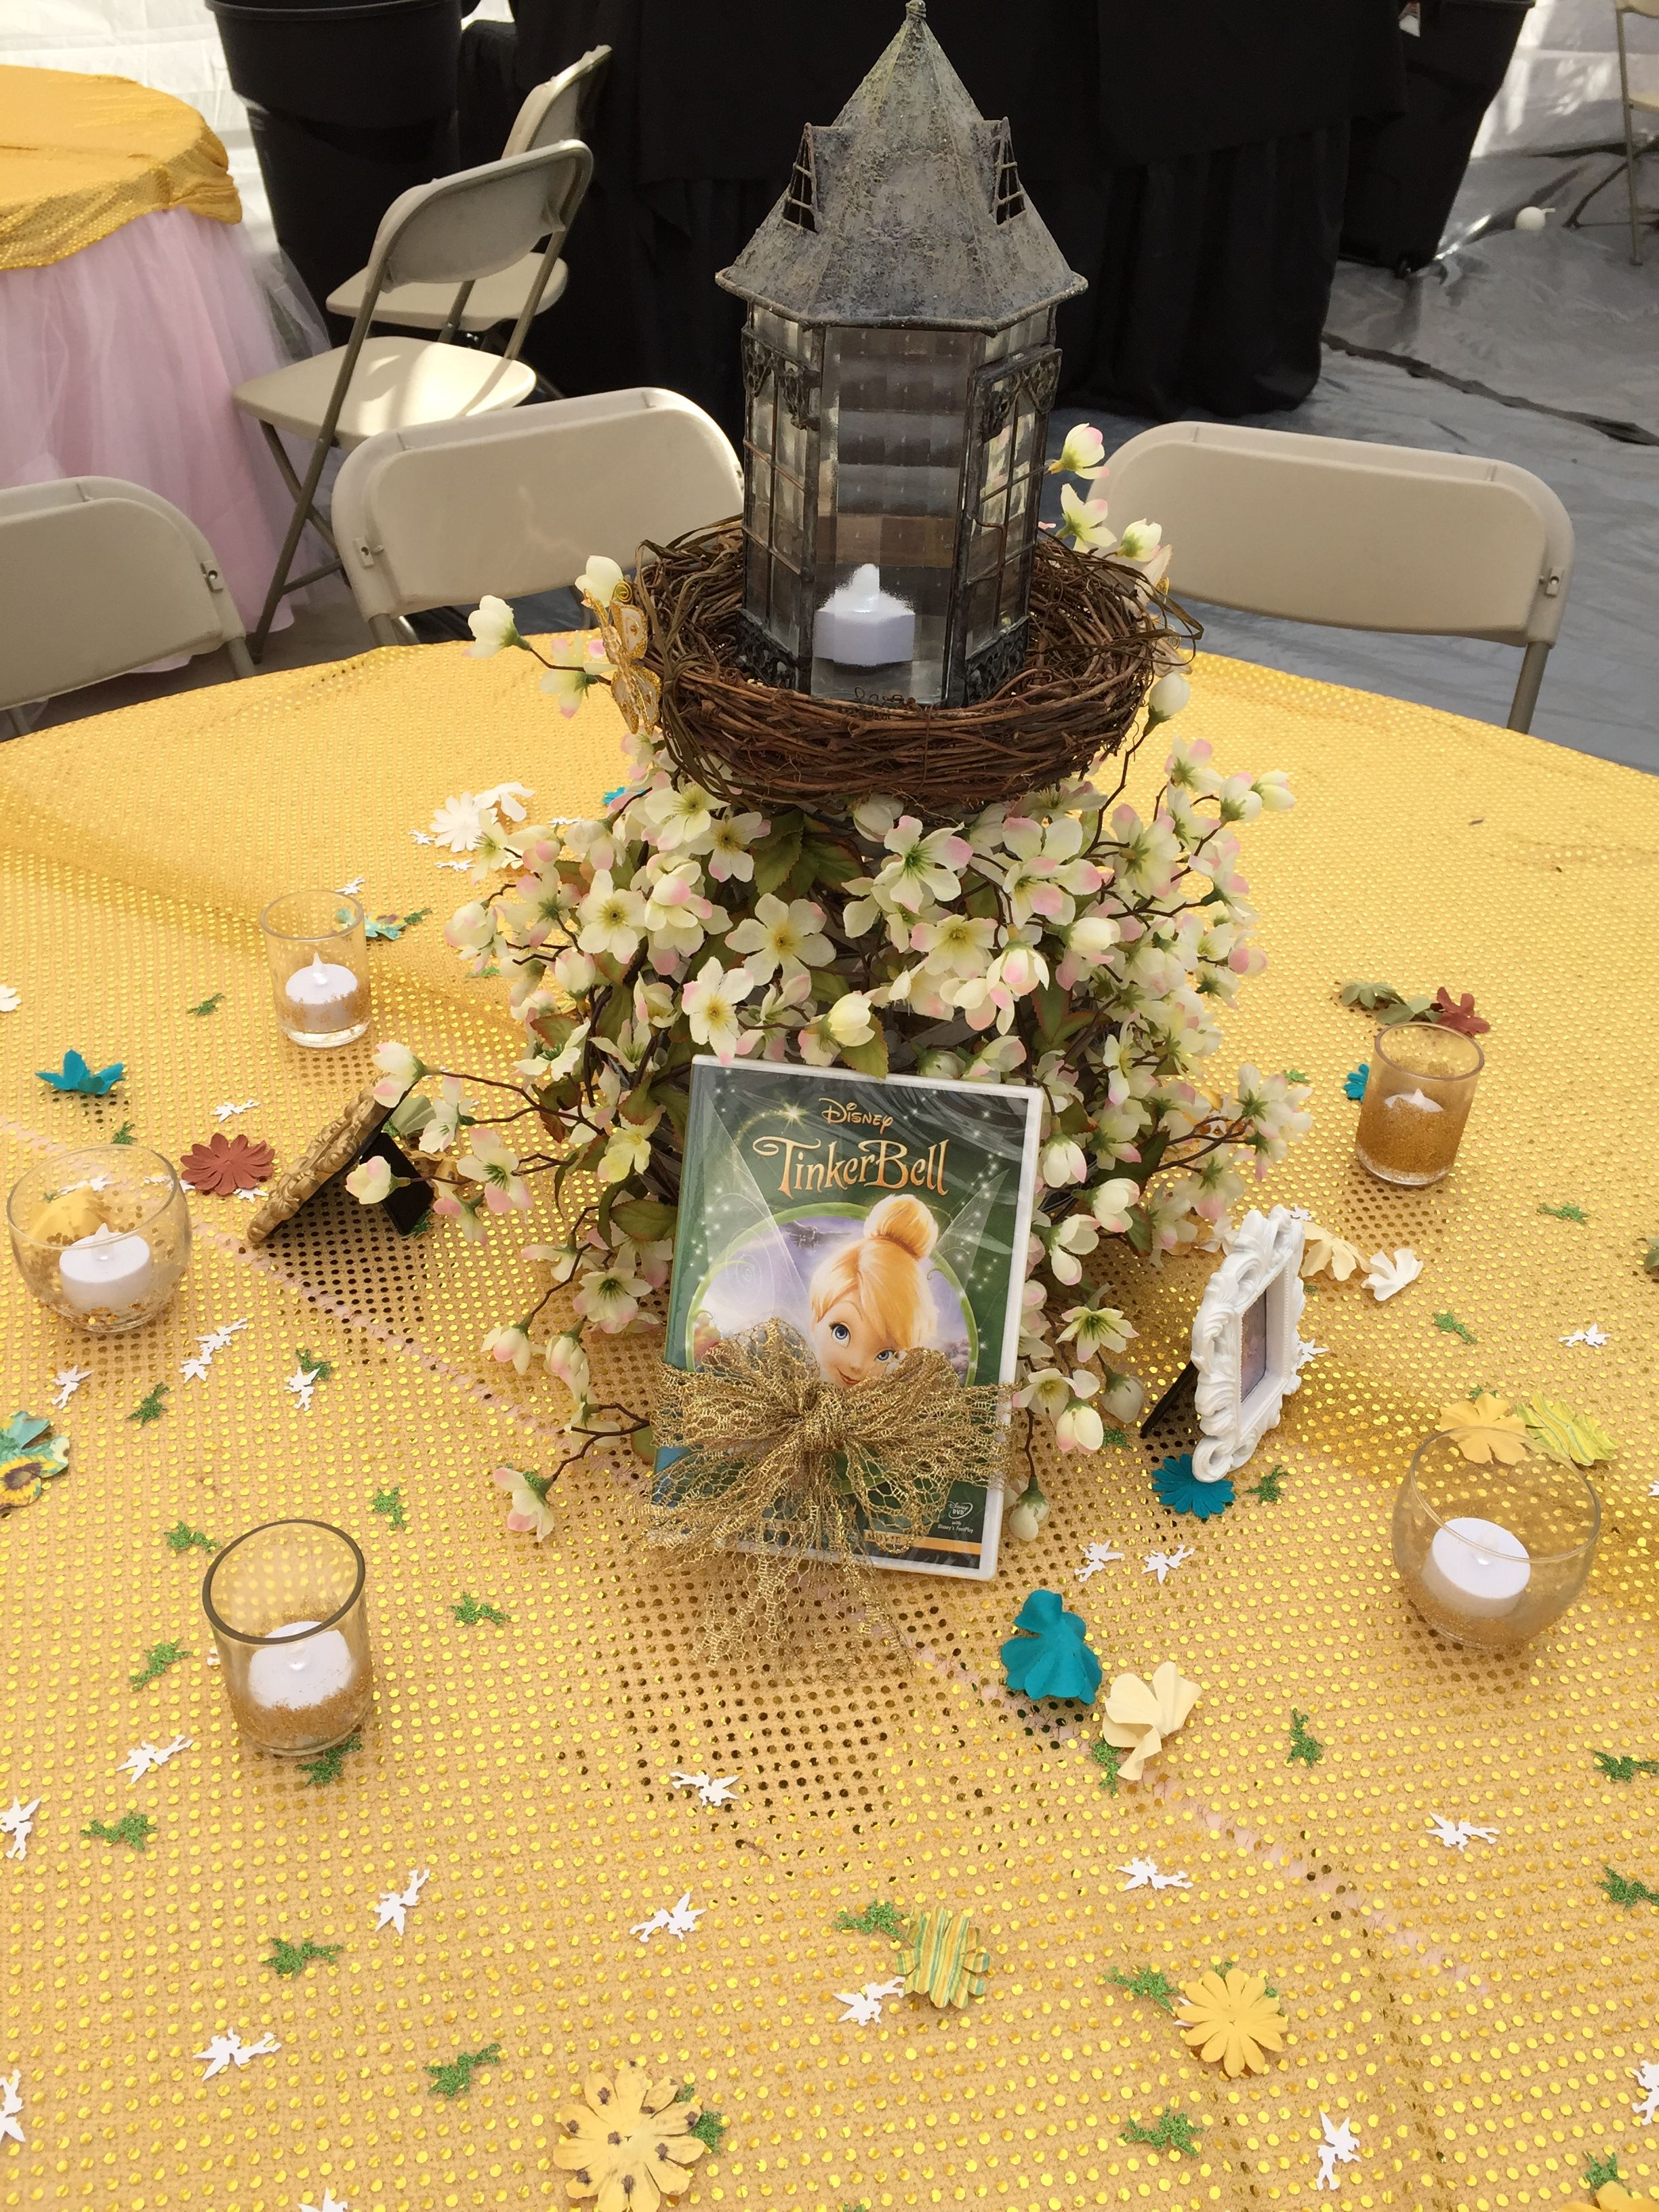 Tinker bell center piece do it yourself girls bday pinterest tinker bell center piece do it yourself solutioingenieria Image collections